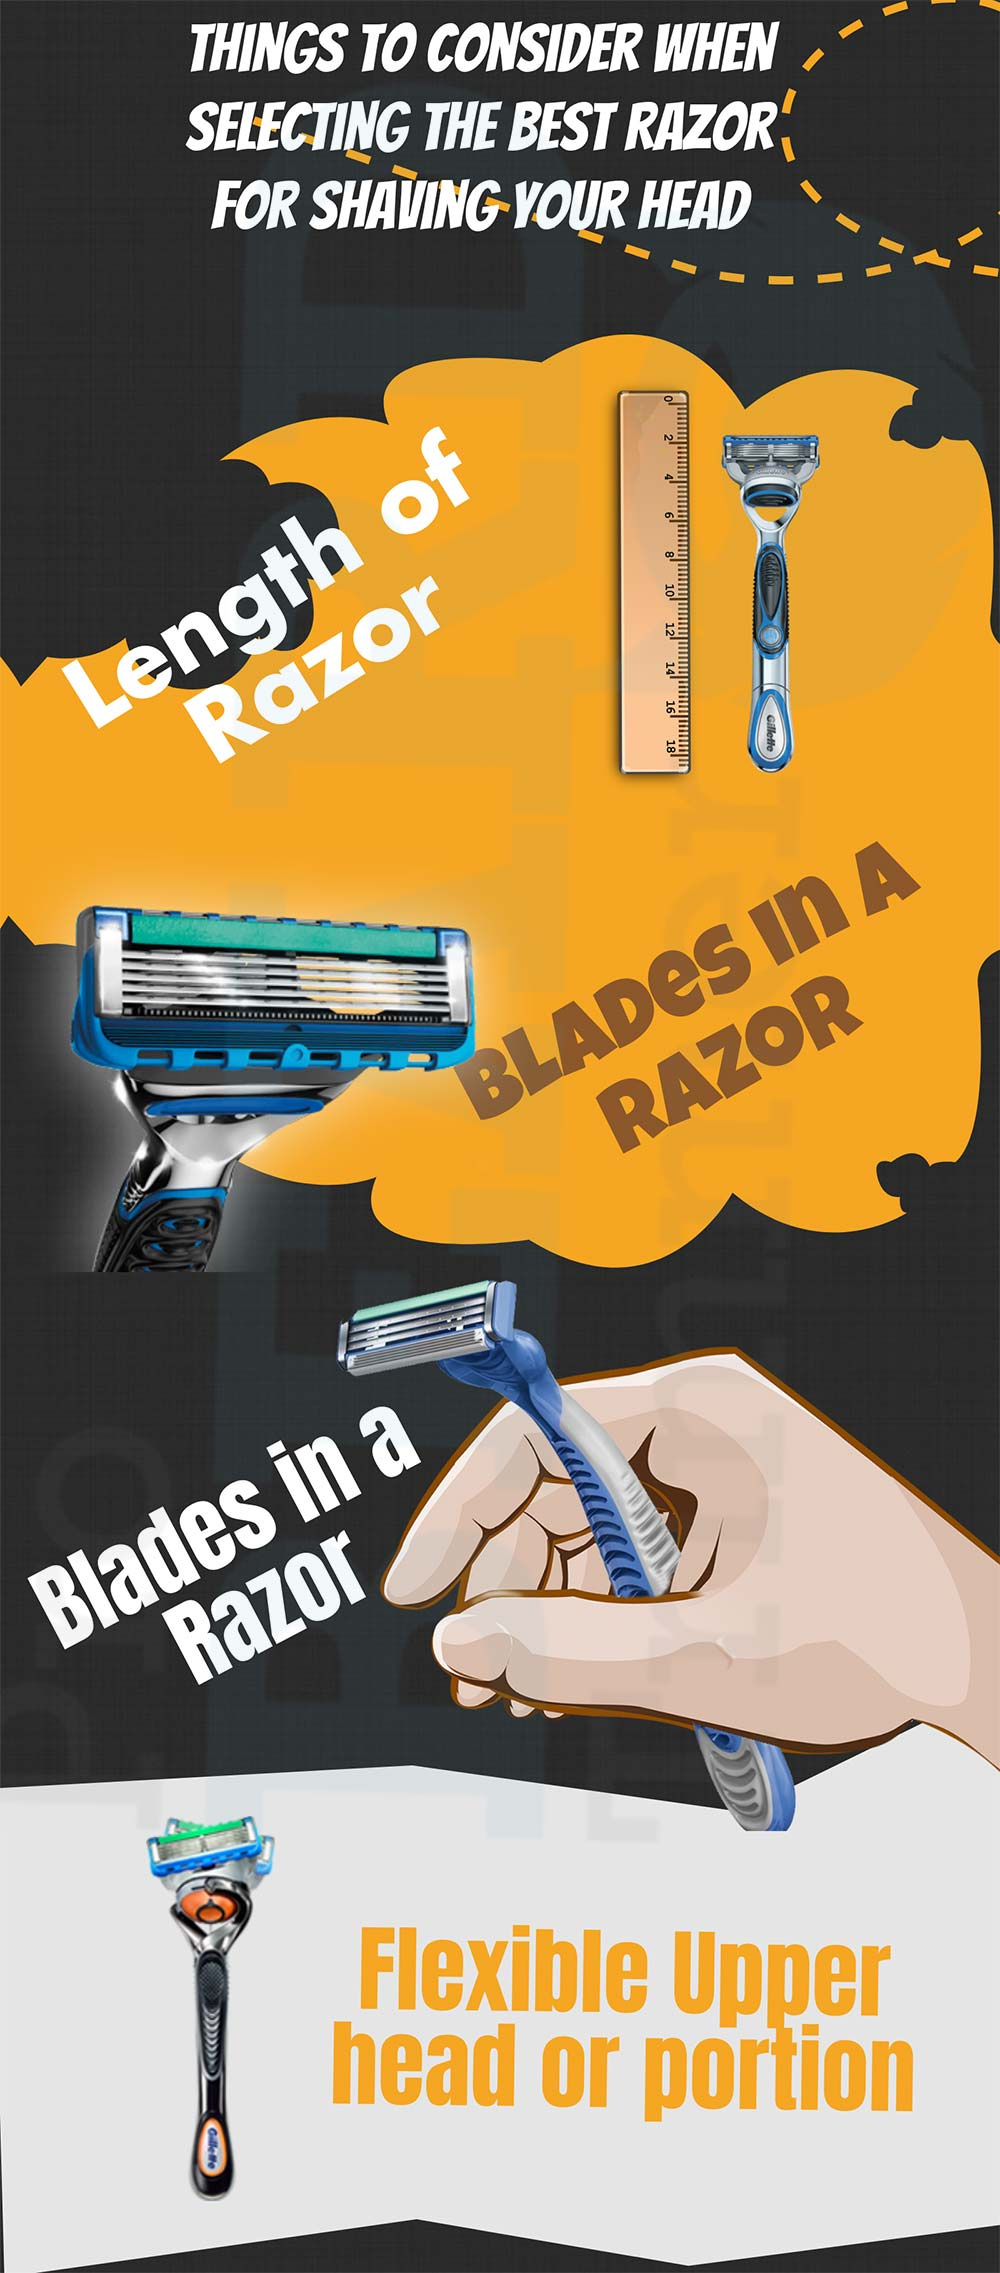 Important Things to look while selecting a Razors for your head